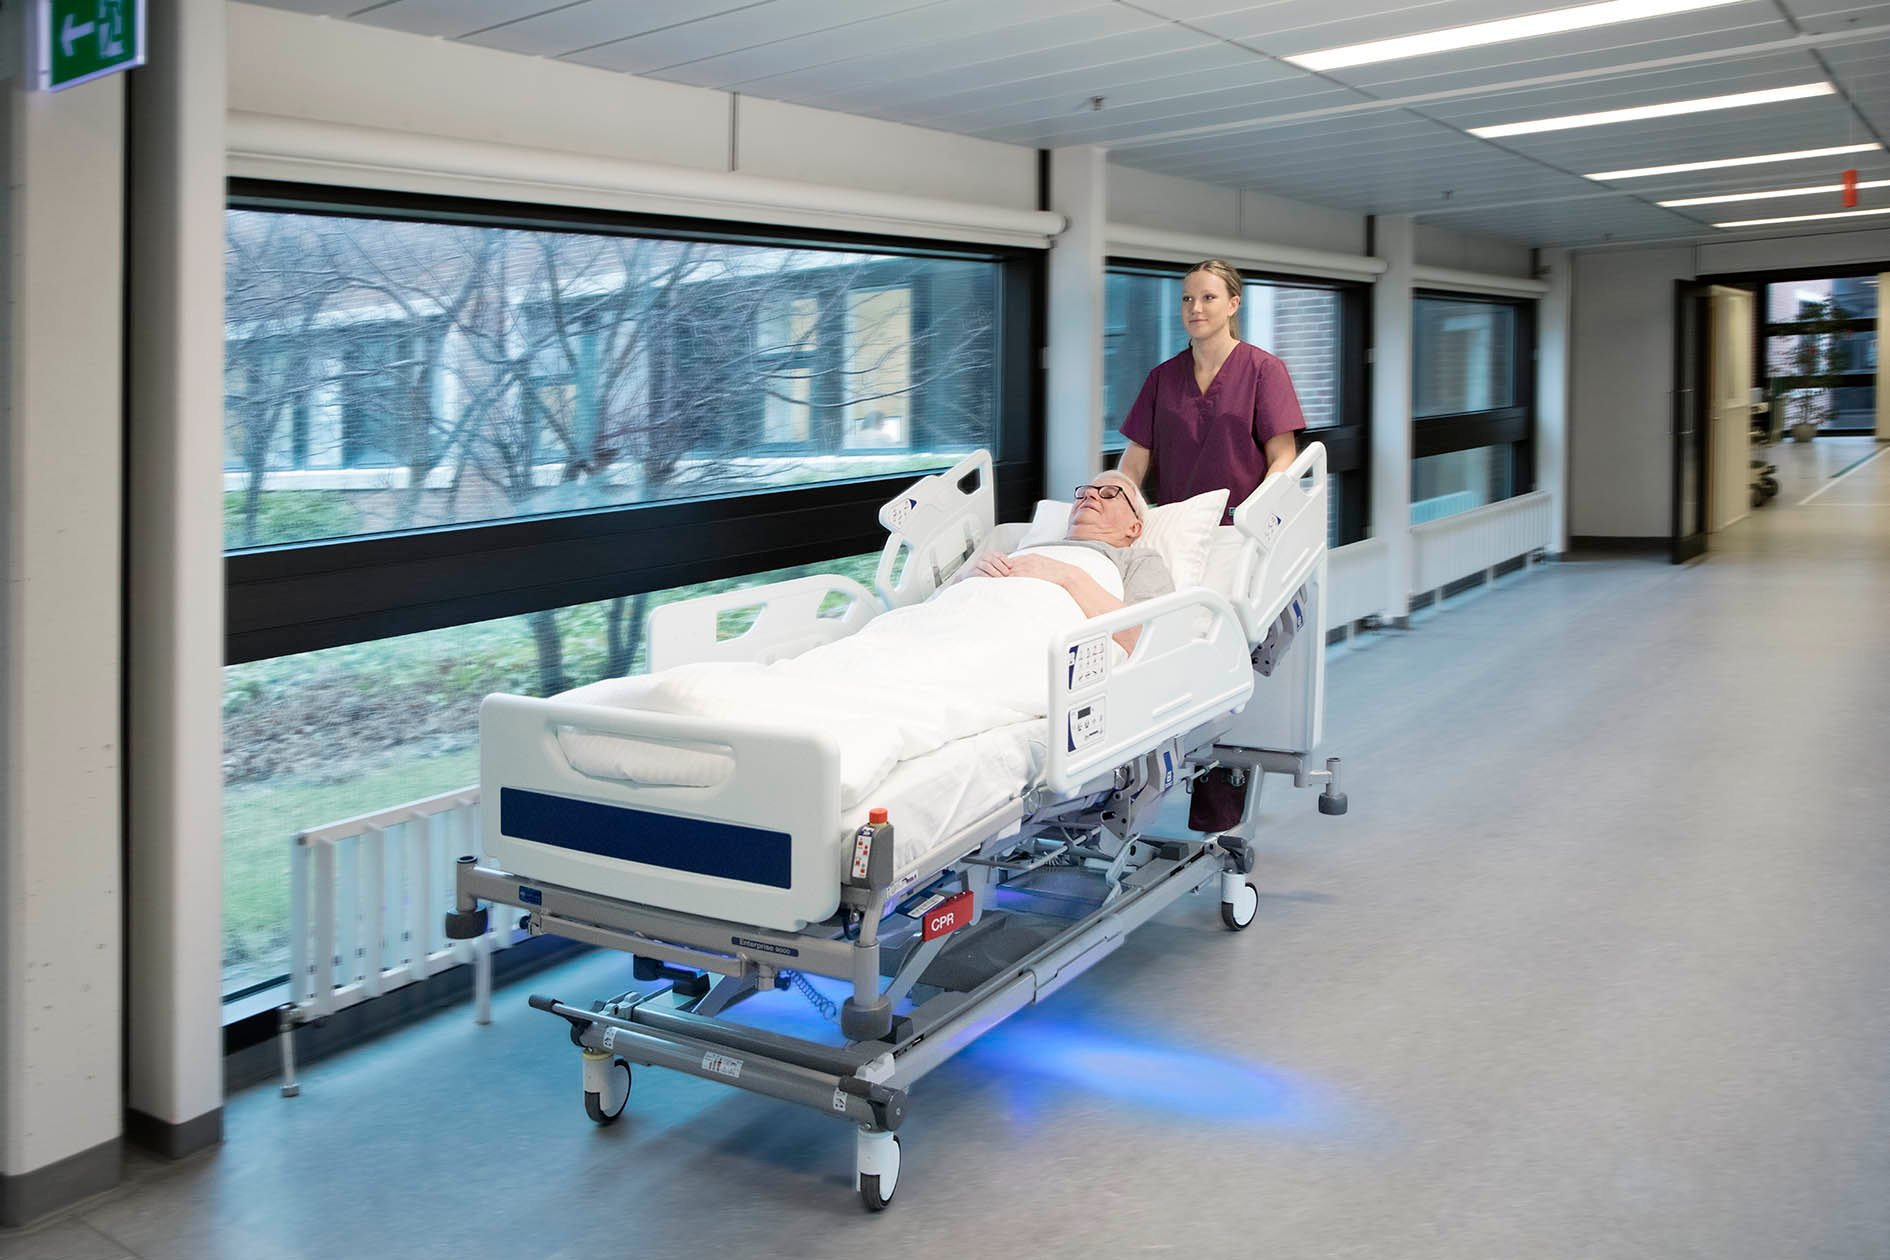 For hospitals looking to reduce ergonomic risk, IndiGo offers a helping hand